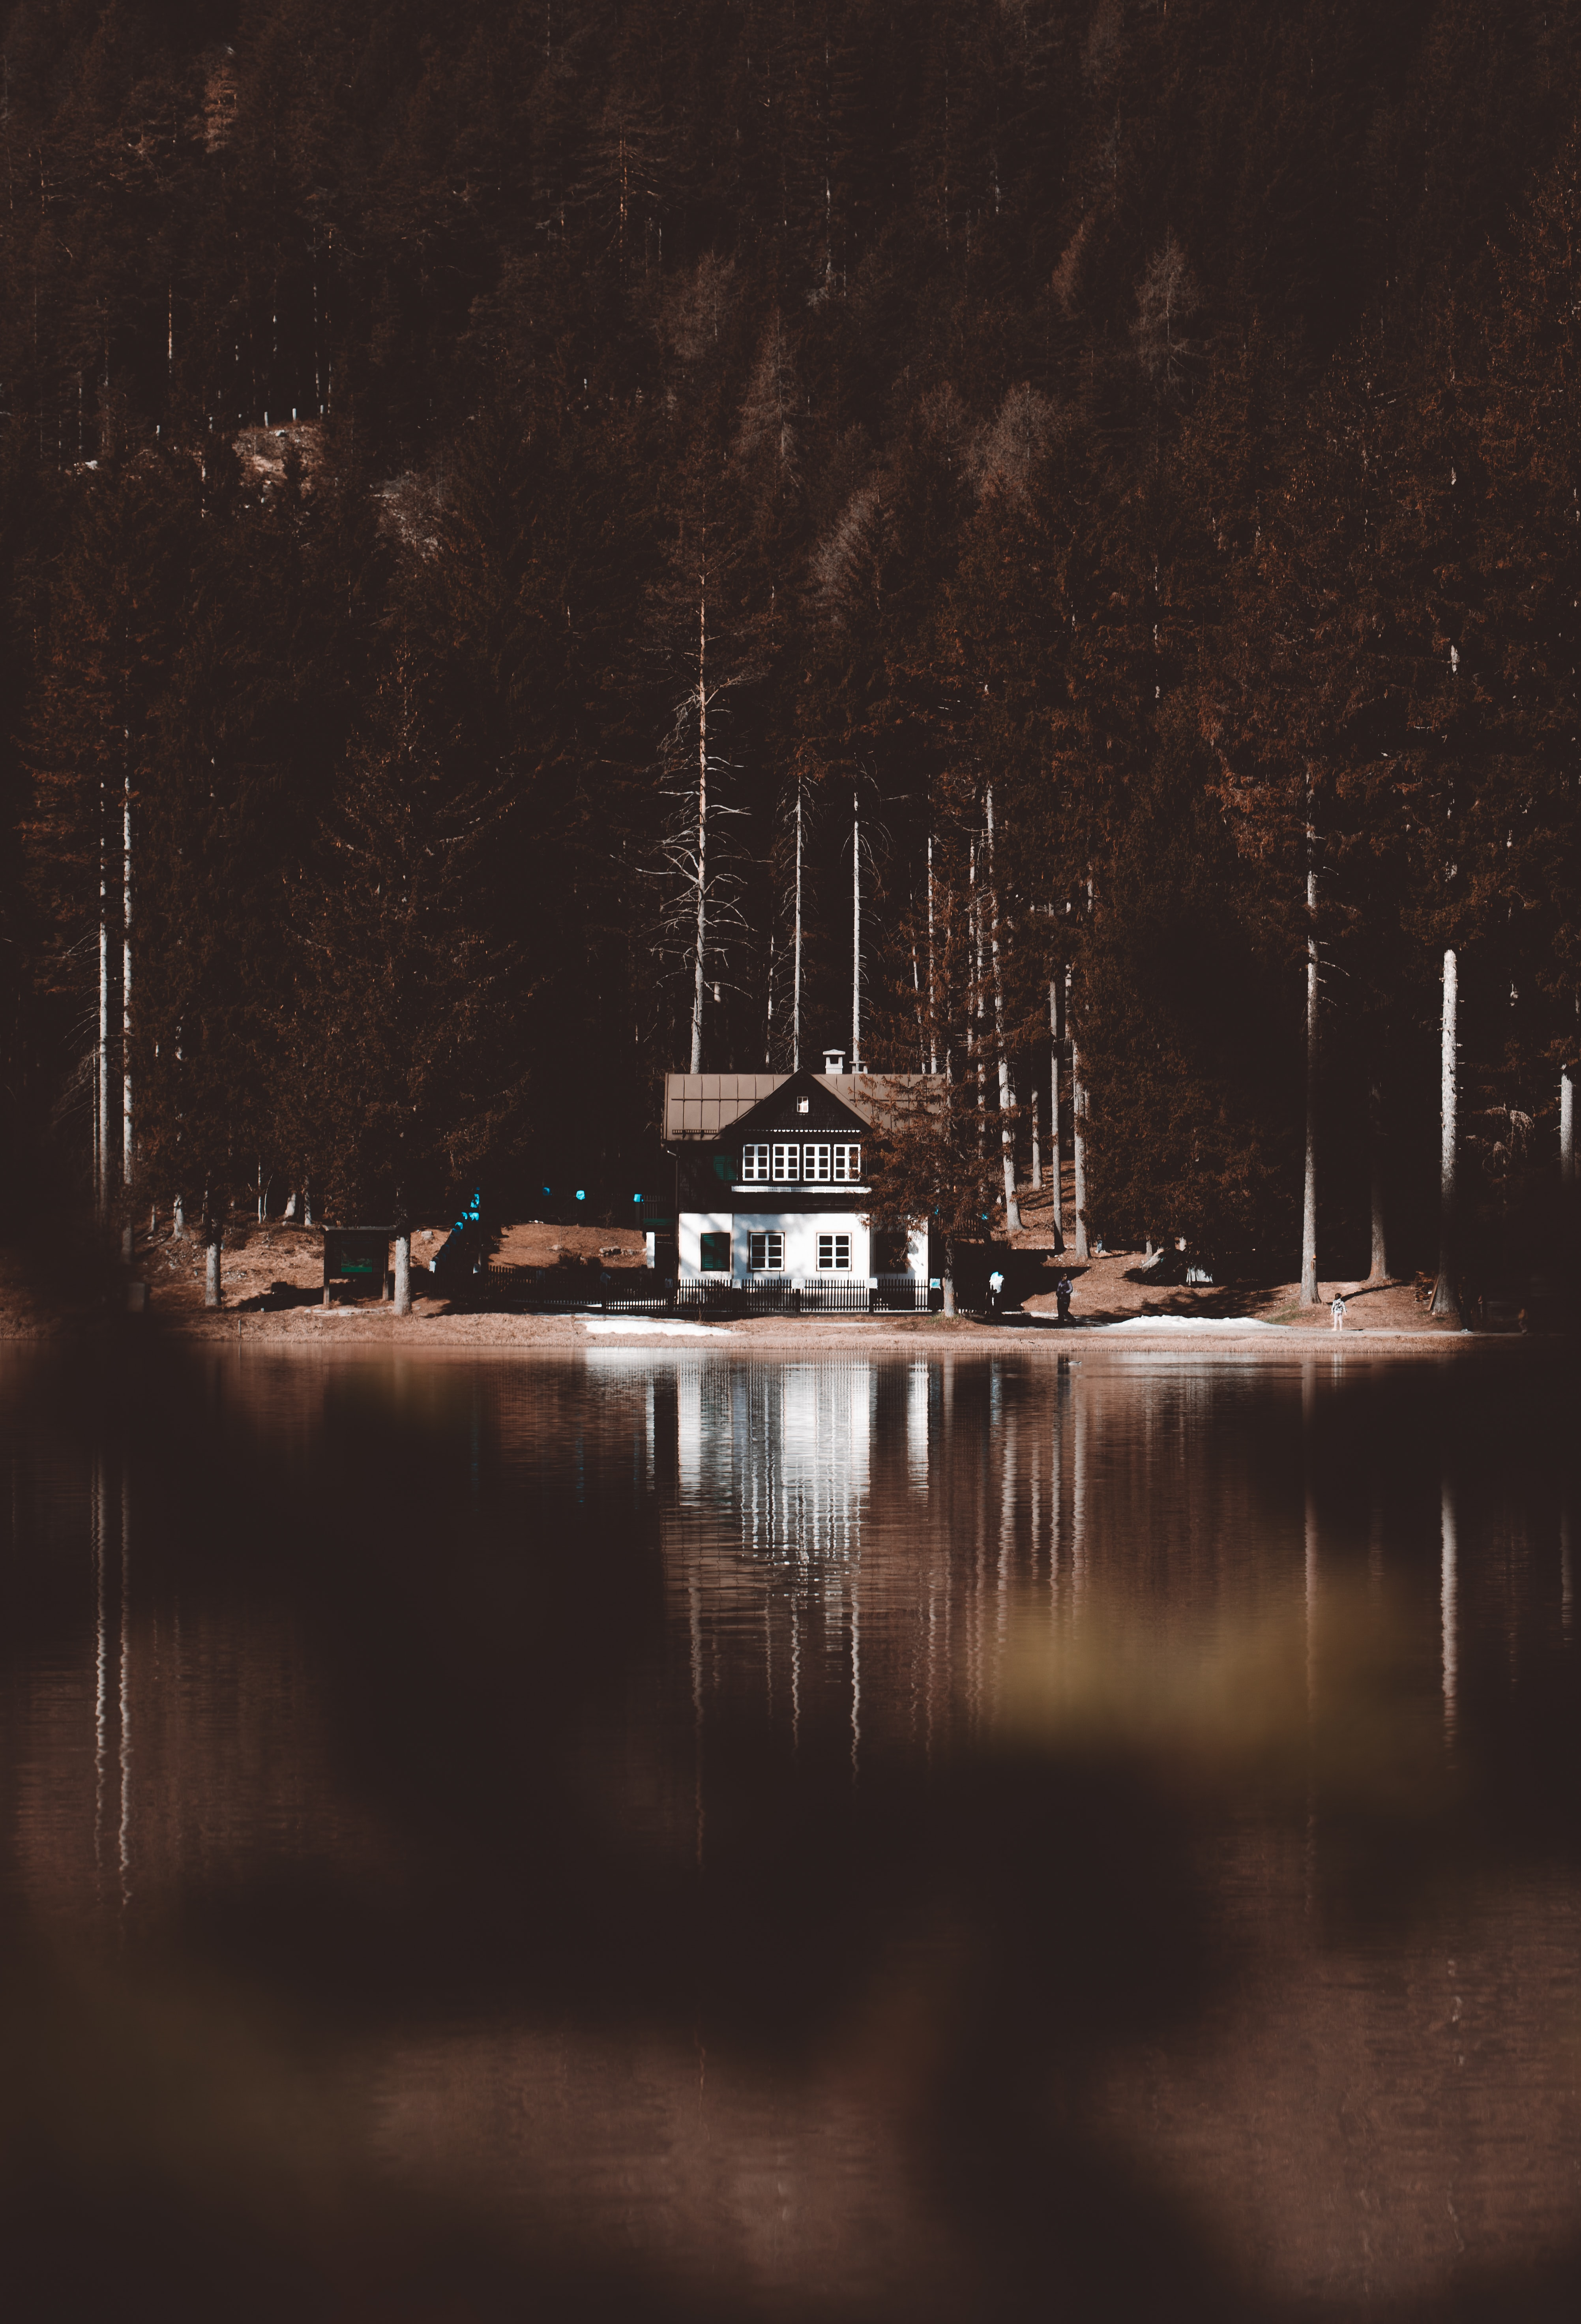 photo of house near body of water